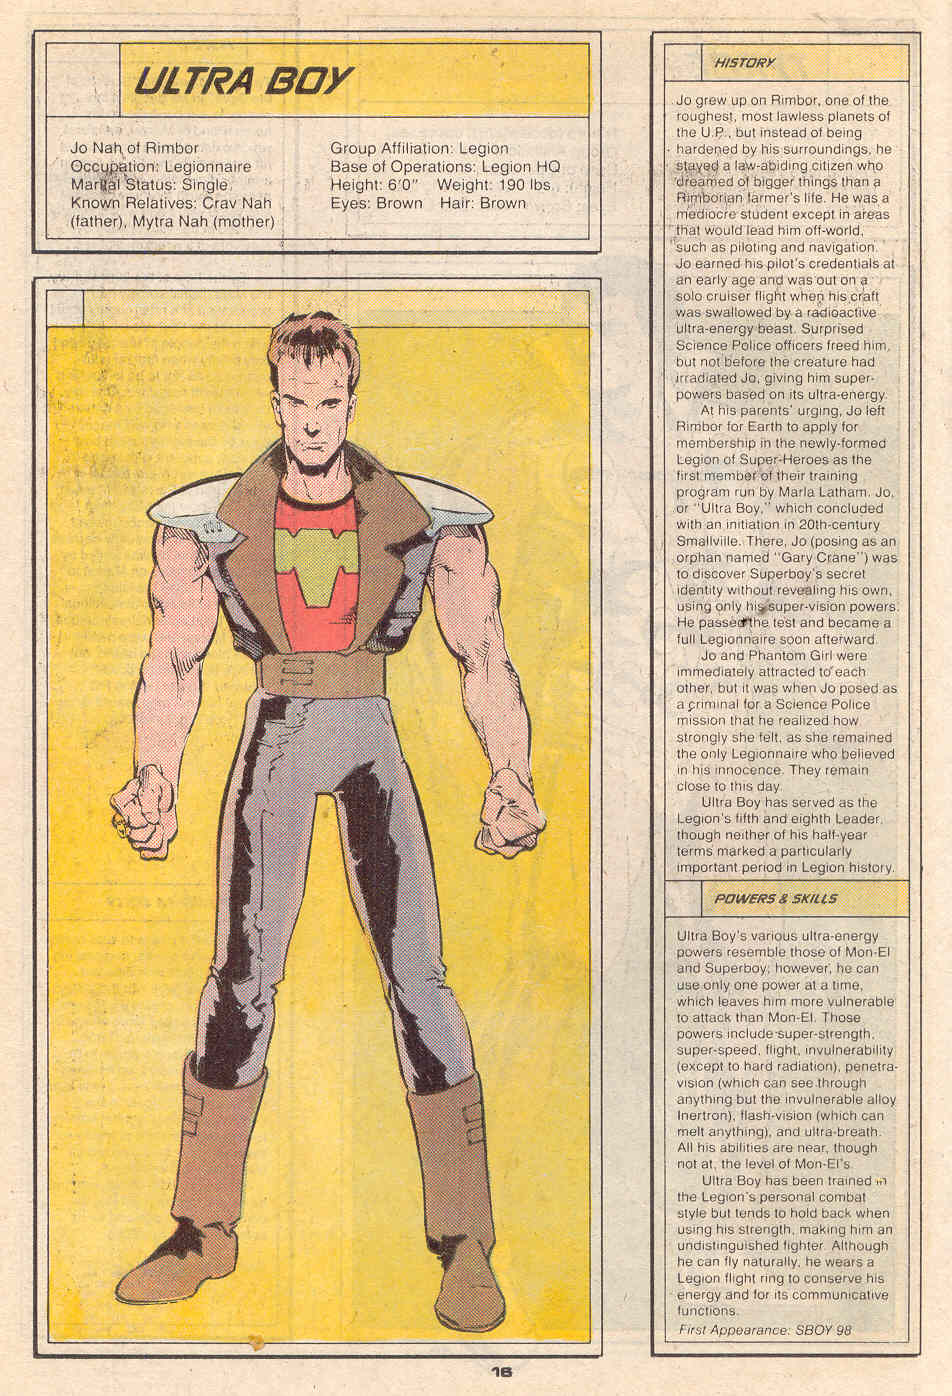 Ultra Boy by Tom Artis and Joe Rubinstein - Who's Who in the Legion of Super-Heroes #7